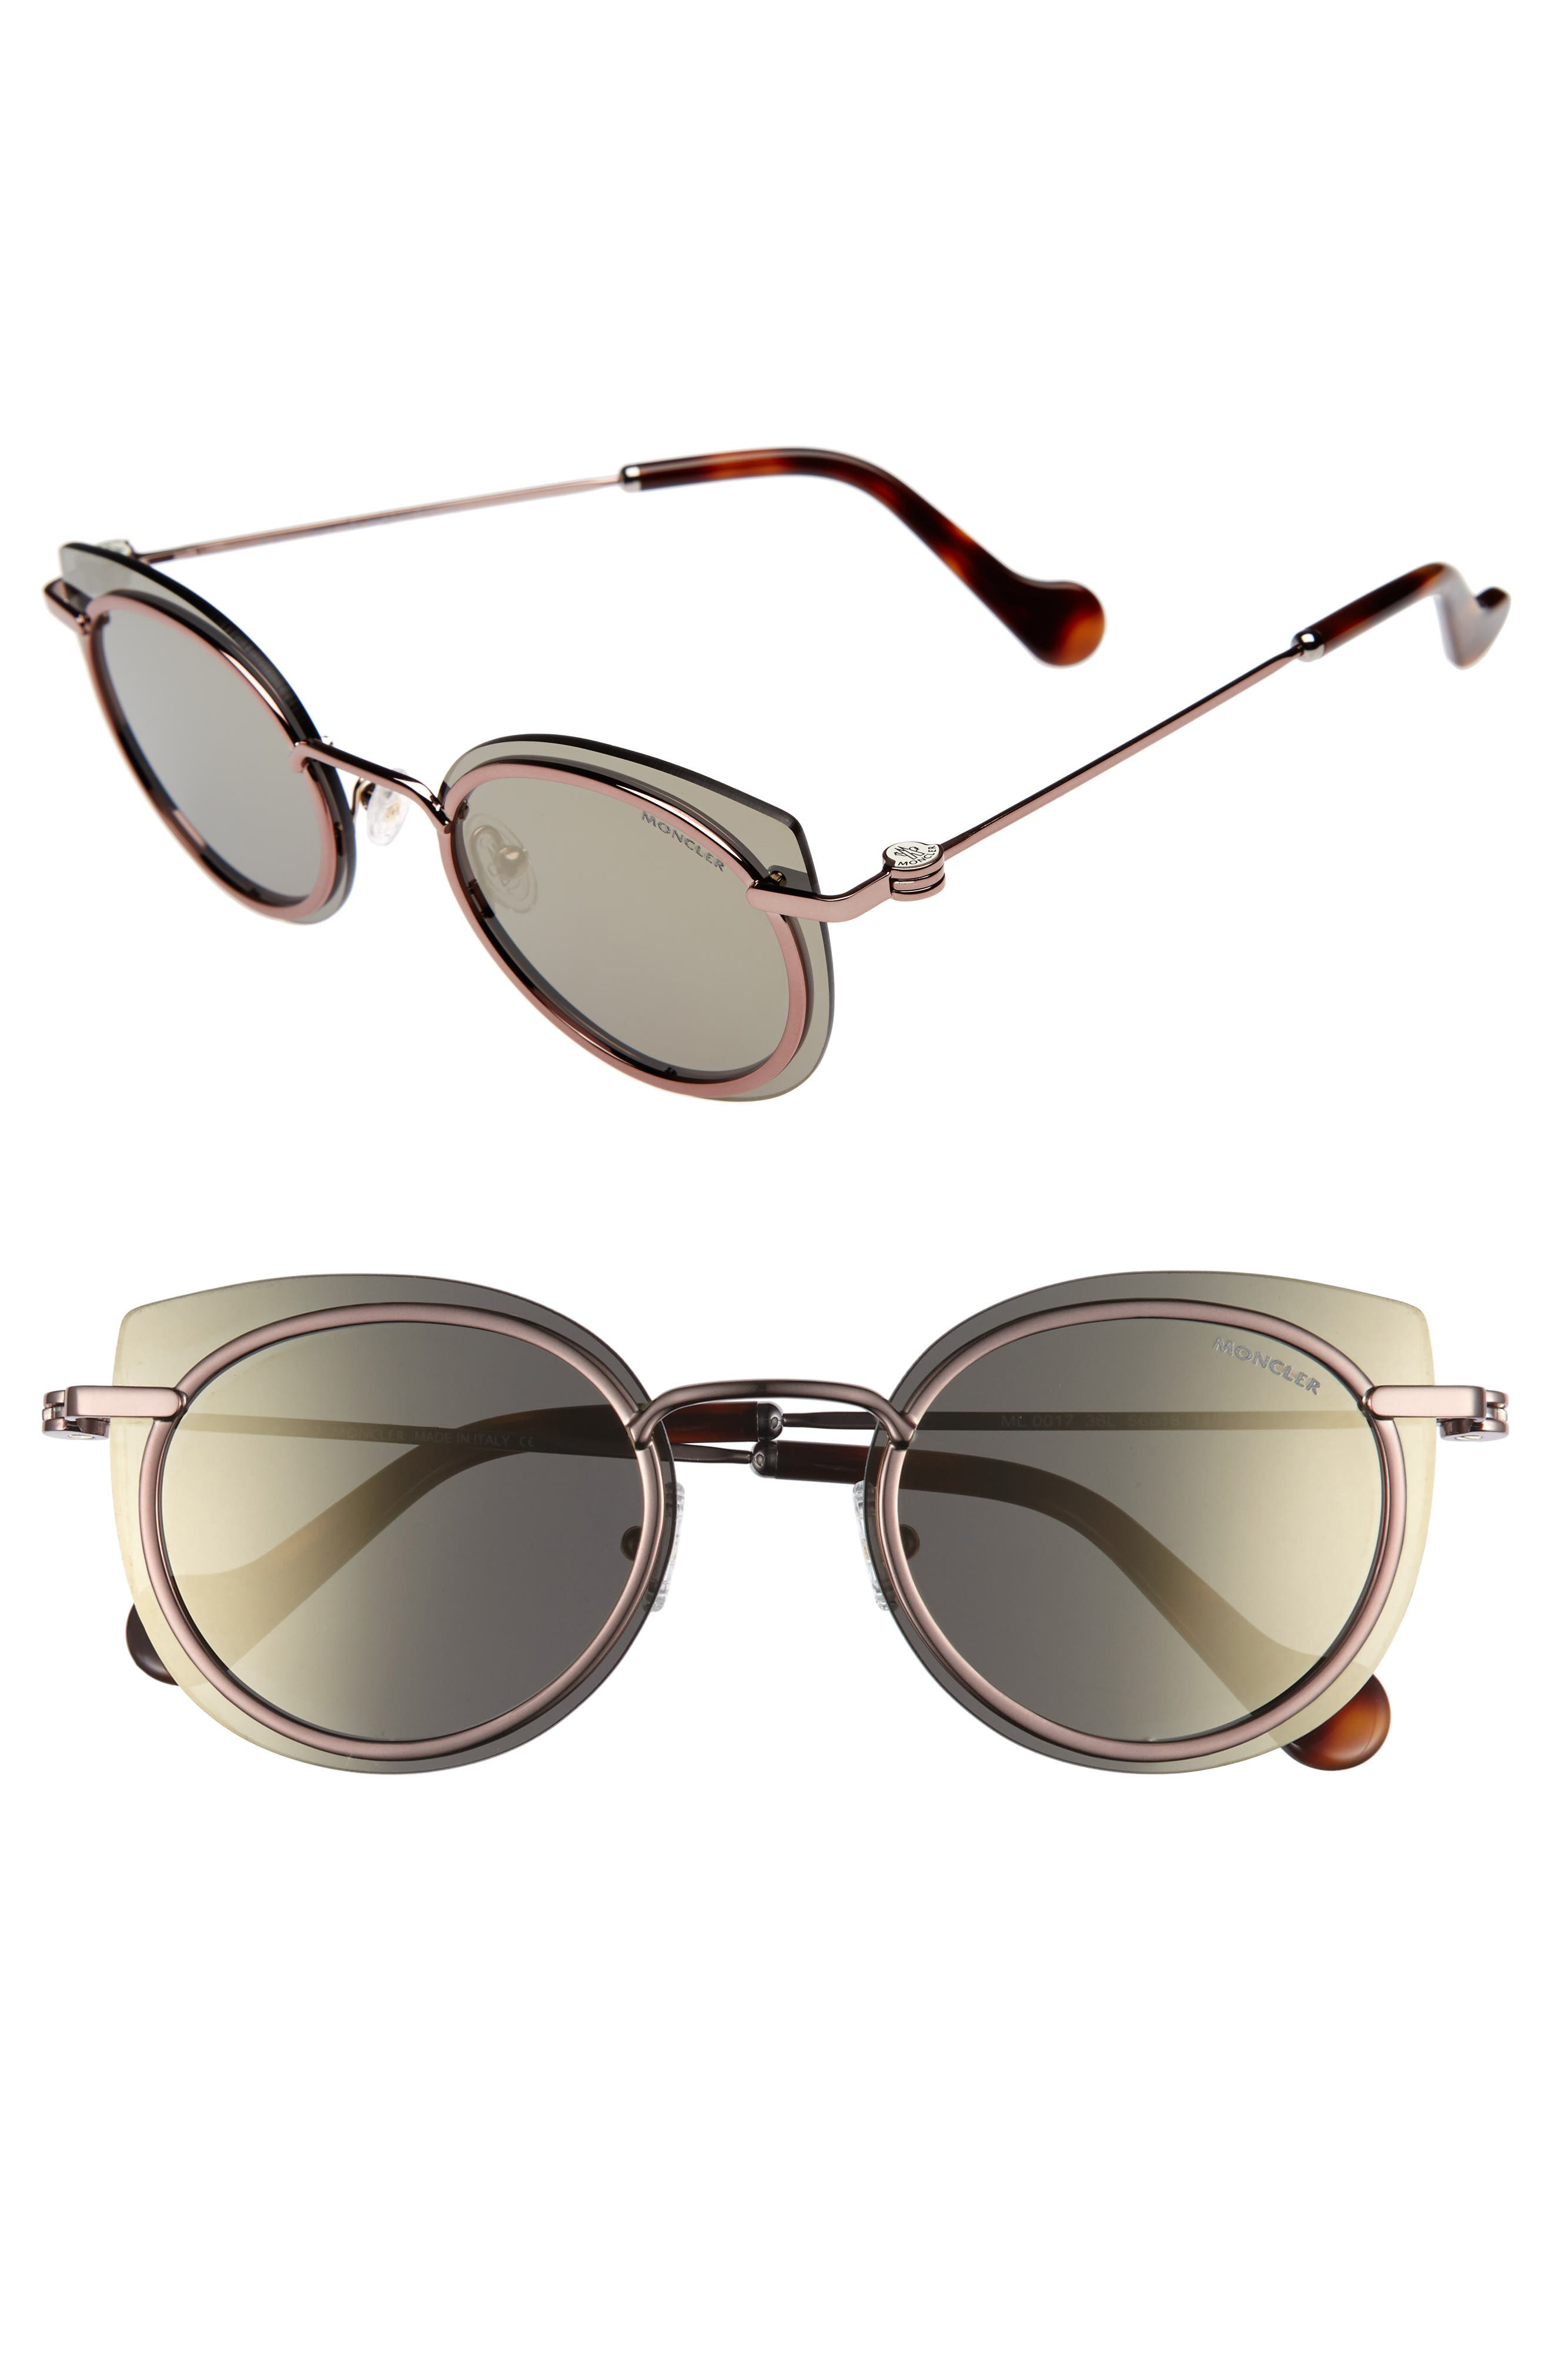 Alternate Image 1 Selected - Moncler 56mm Mirrored Cat Eye Sunglasses